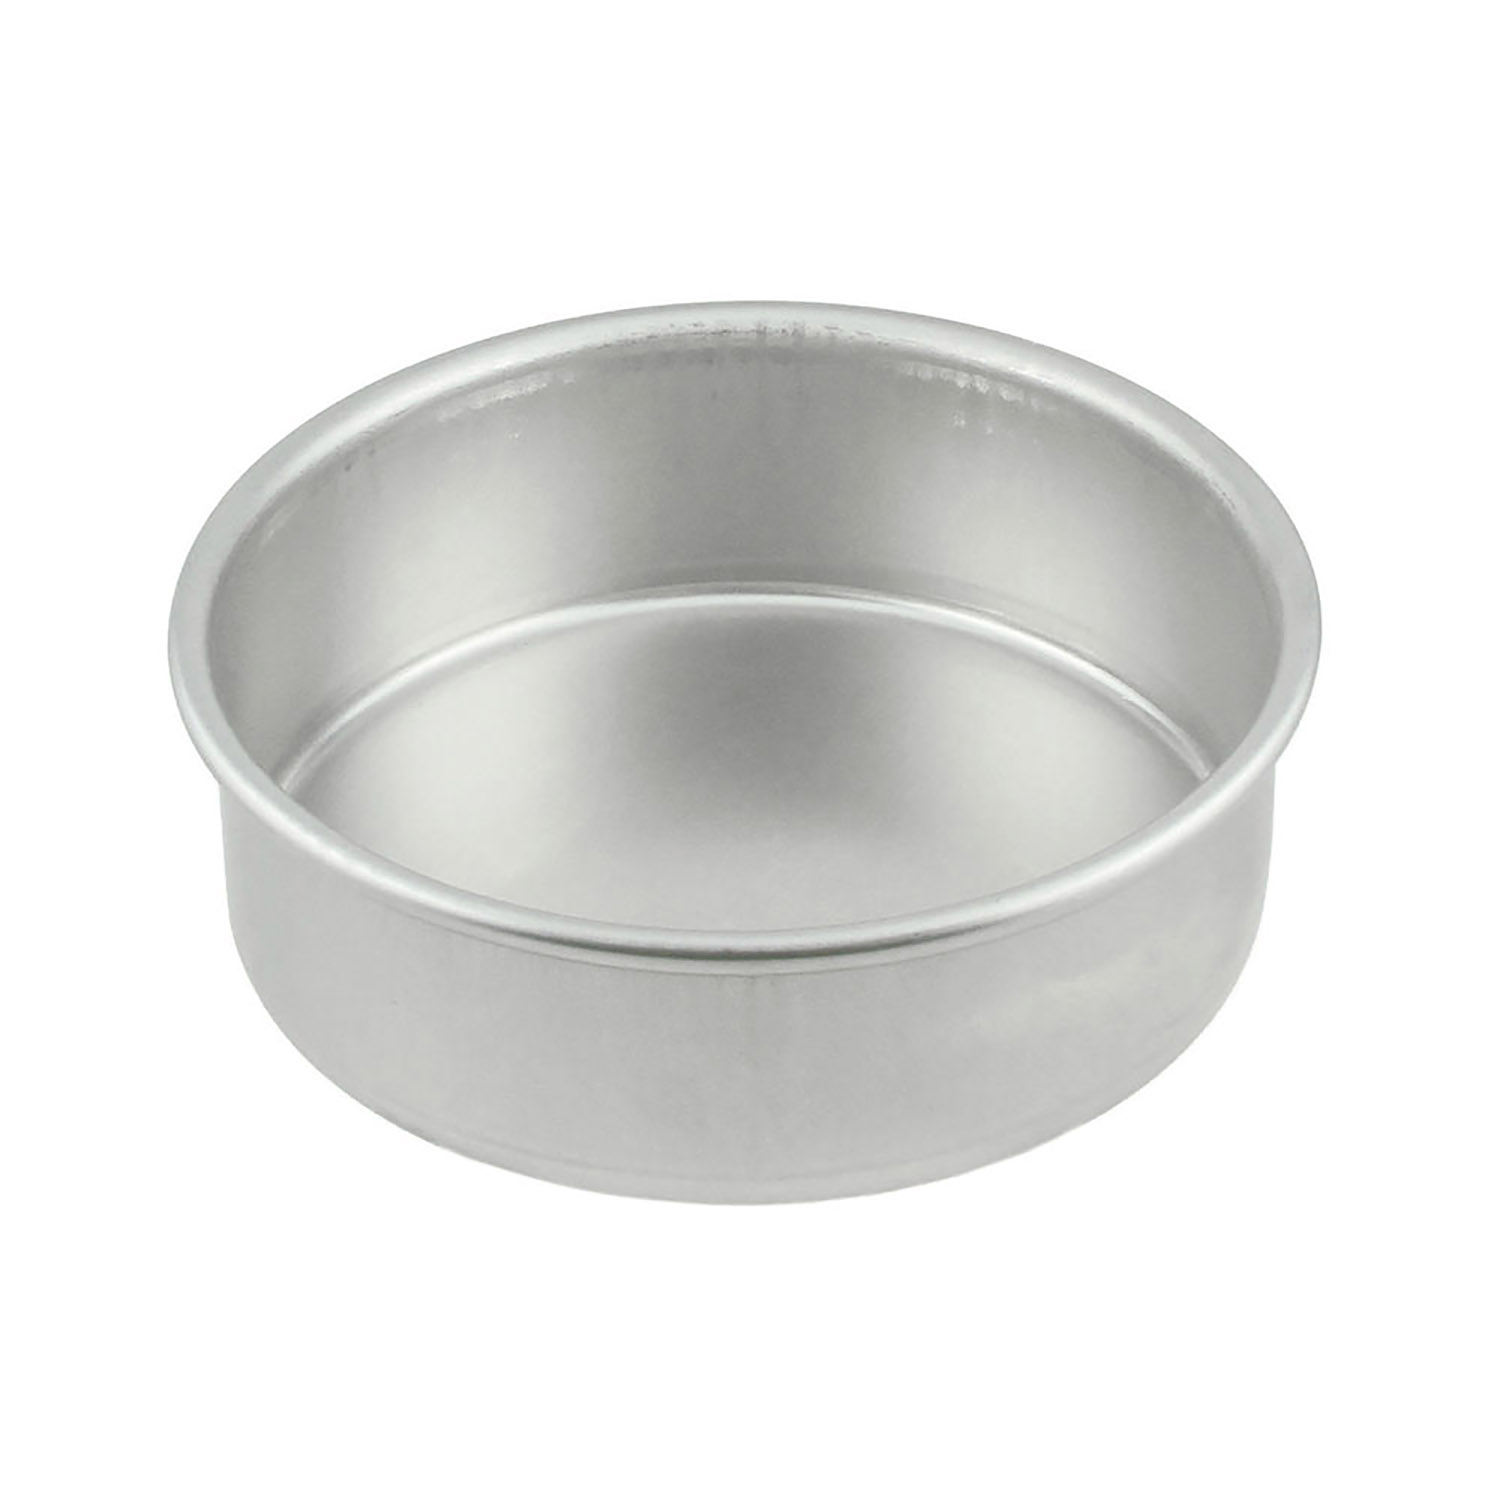 "6 x 2"" Magic Line Round Cake Pan"